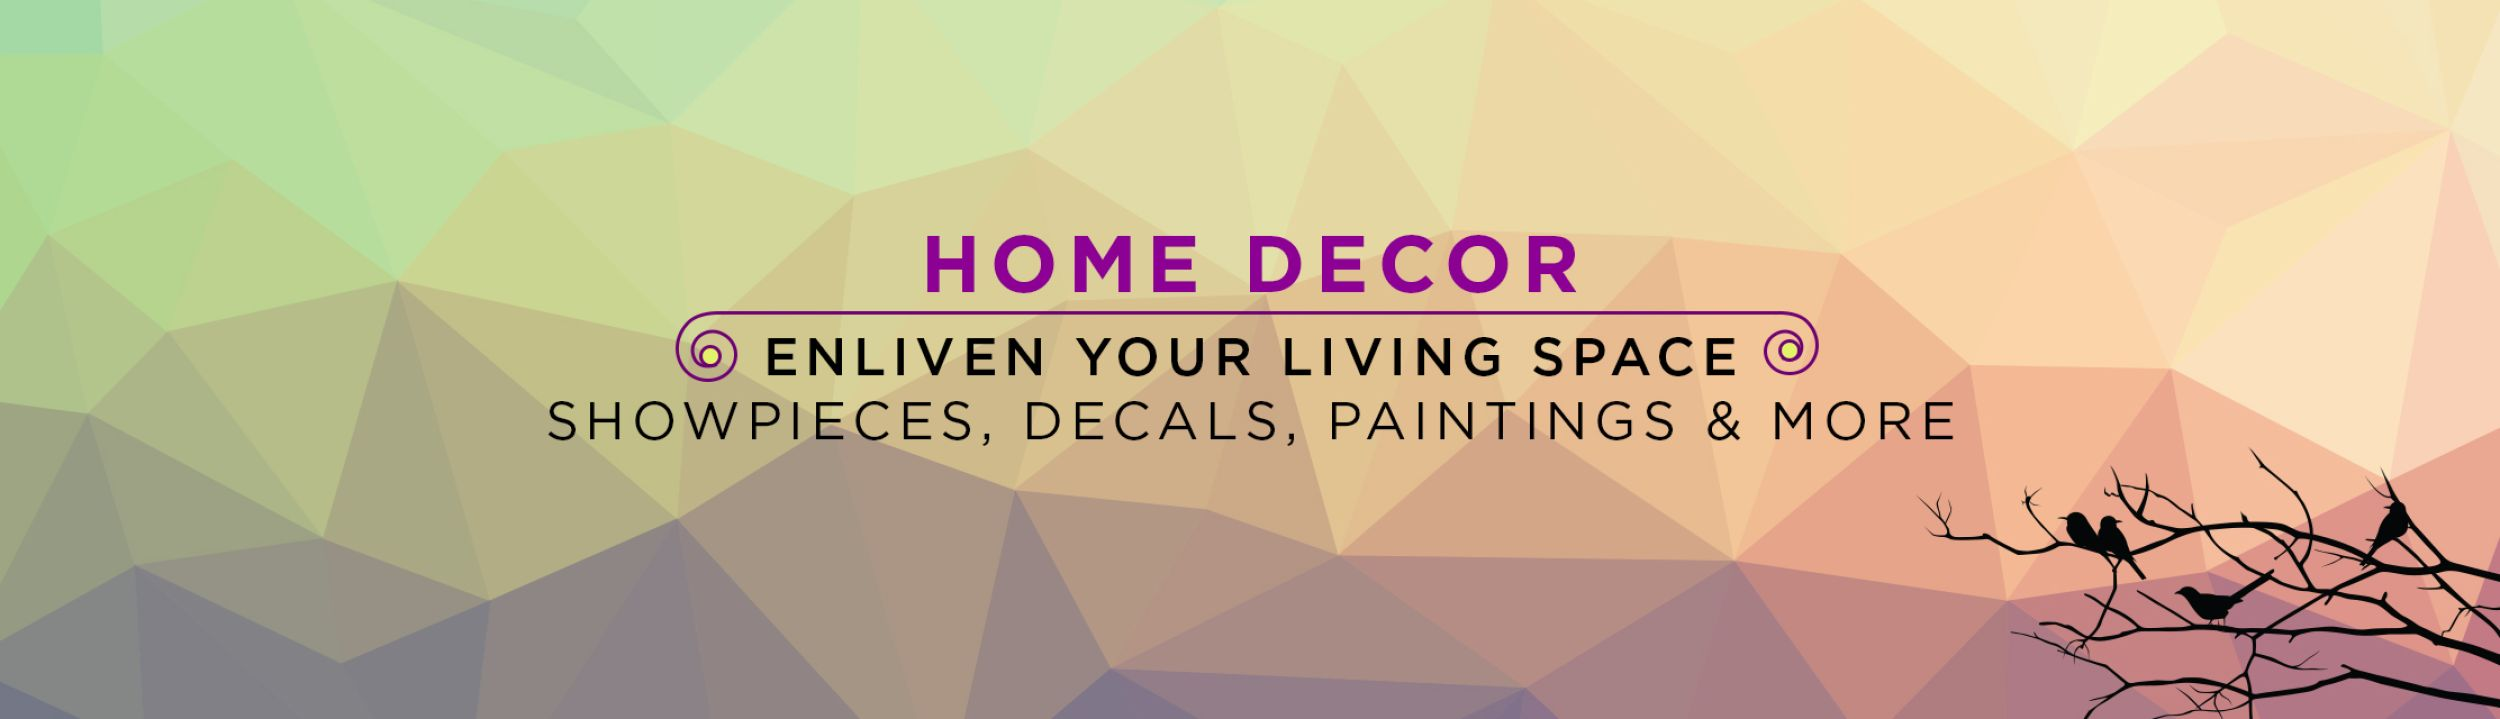 Home Decor | Buy Home Decorative Products Online at Best Prices ...